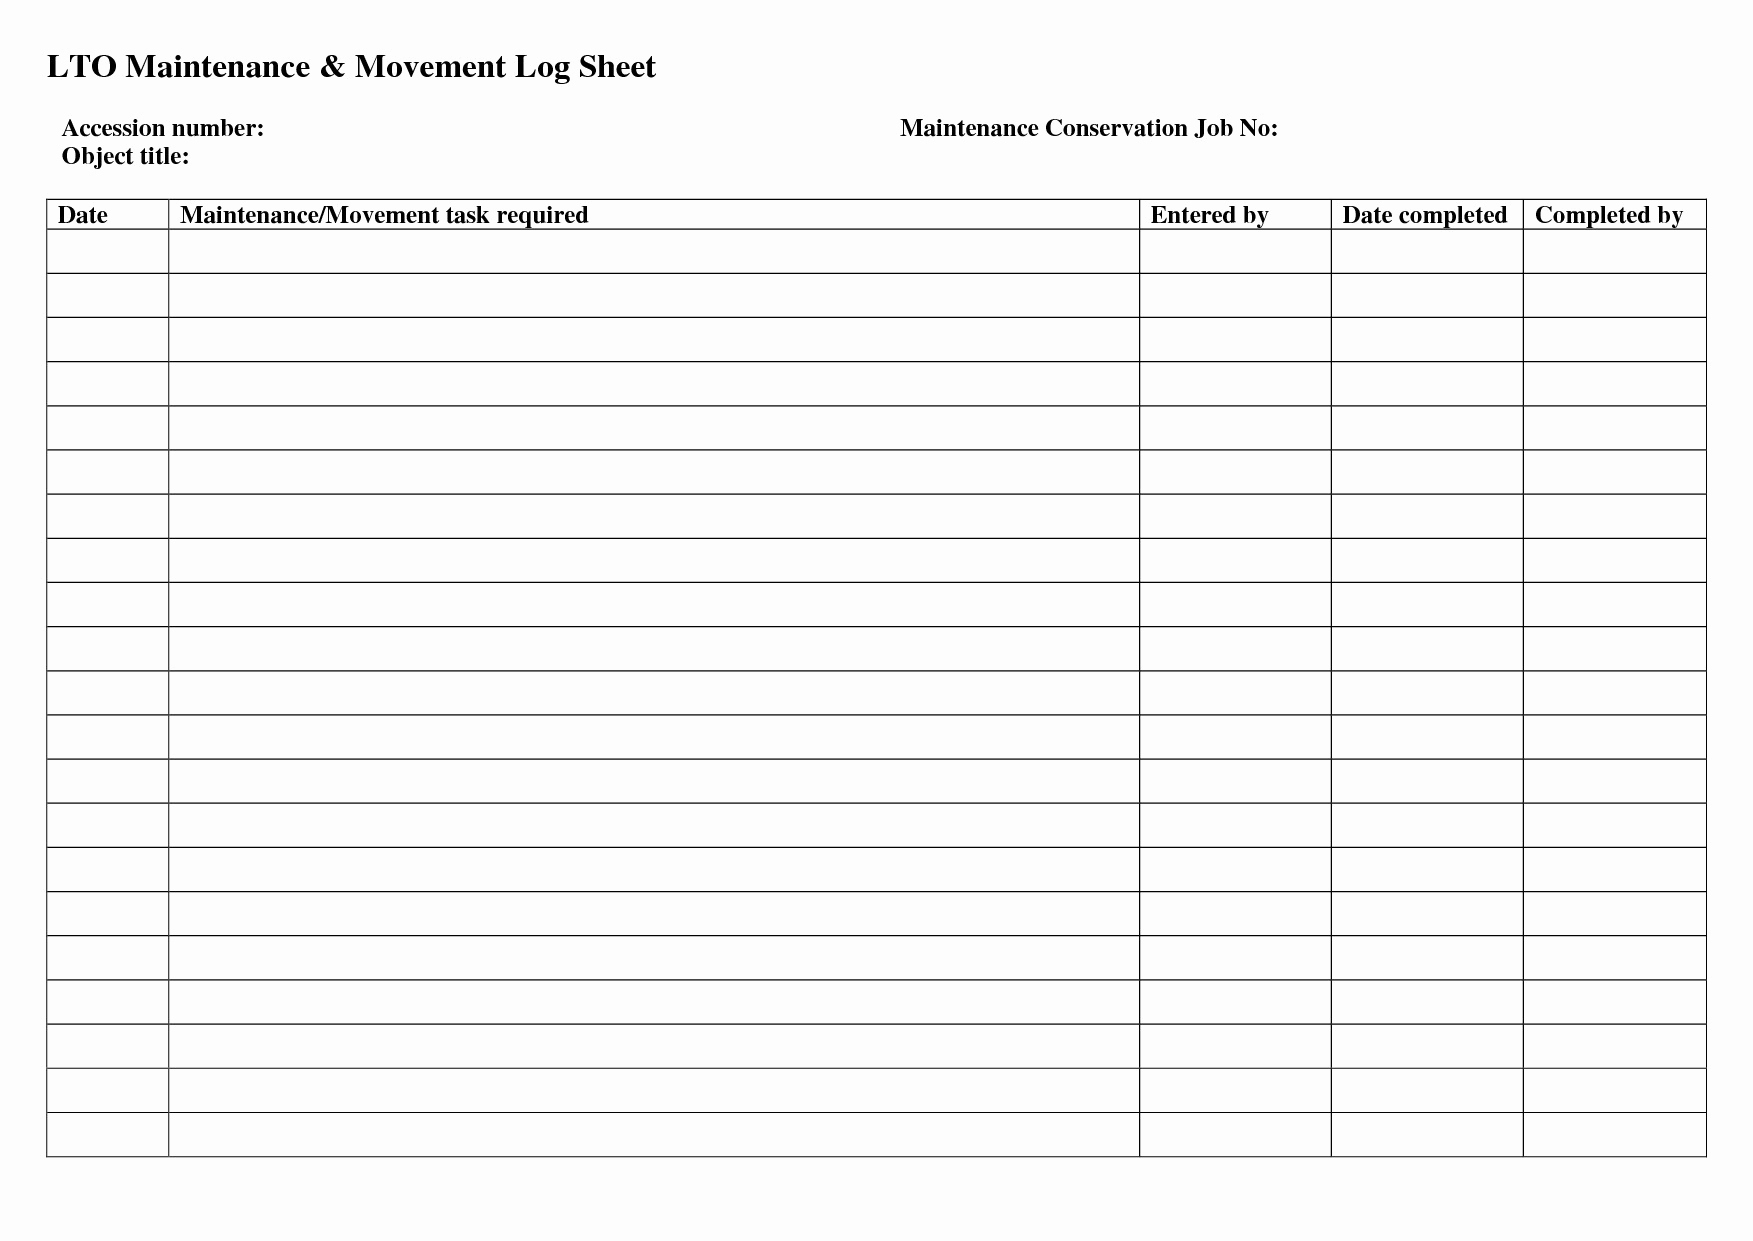 Maintenance Log Spreadsheet Within Auto Maintenance Schedule Spreadsheet Car Download Vehicle